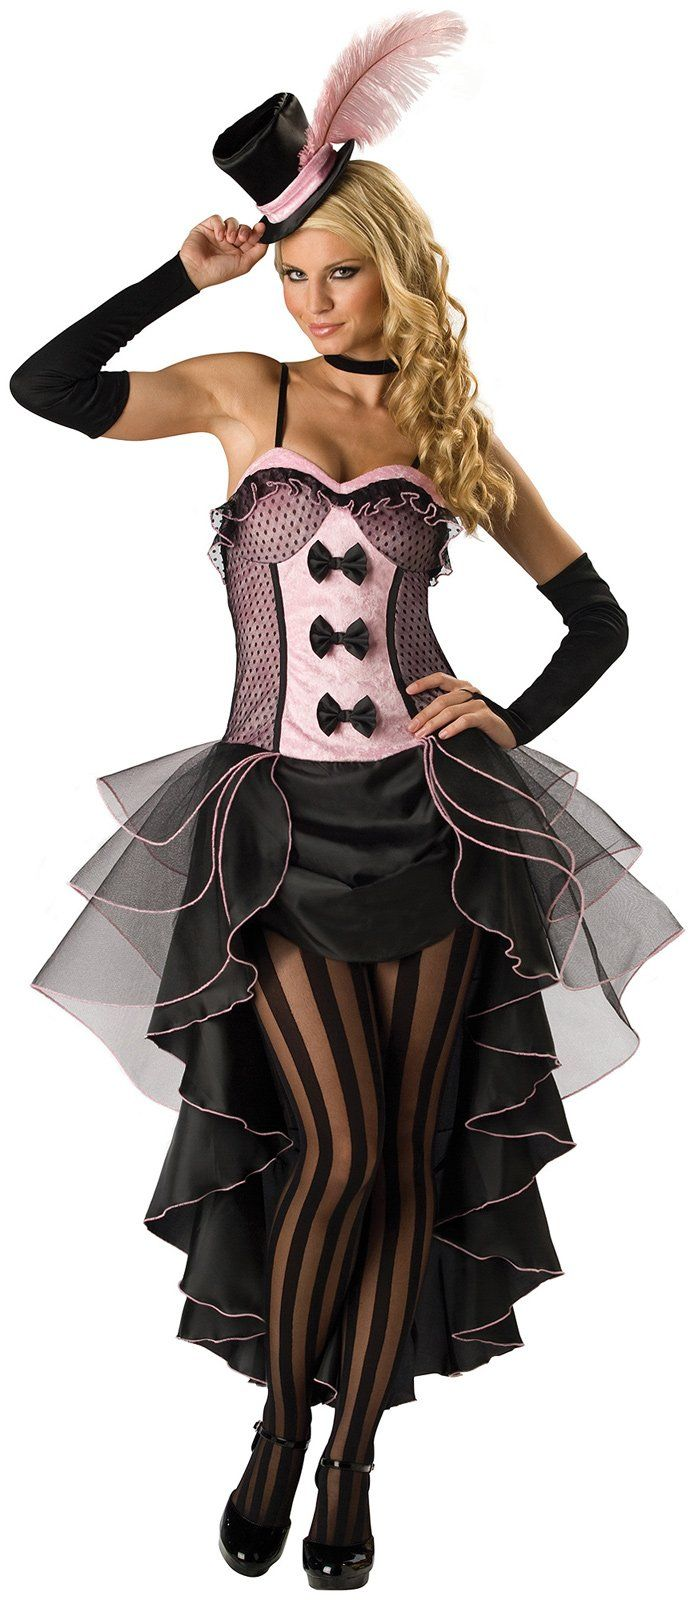 Burlesque Babe Adult Costume from BuyCostumes.com